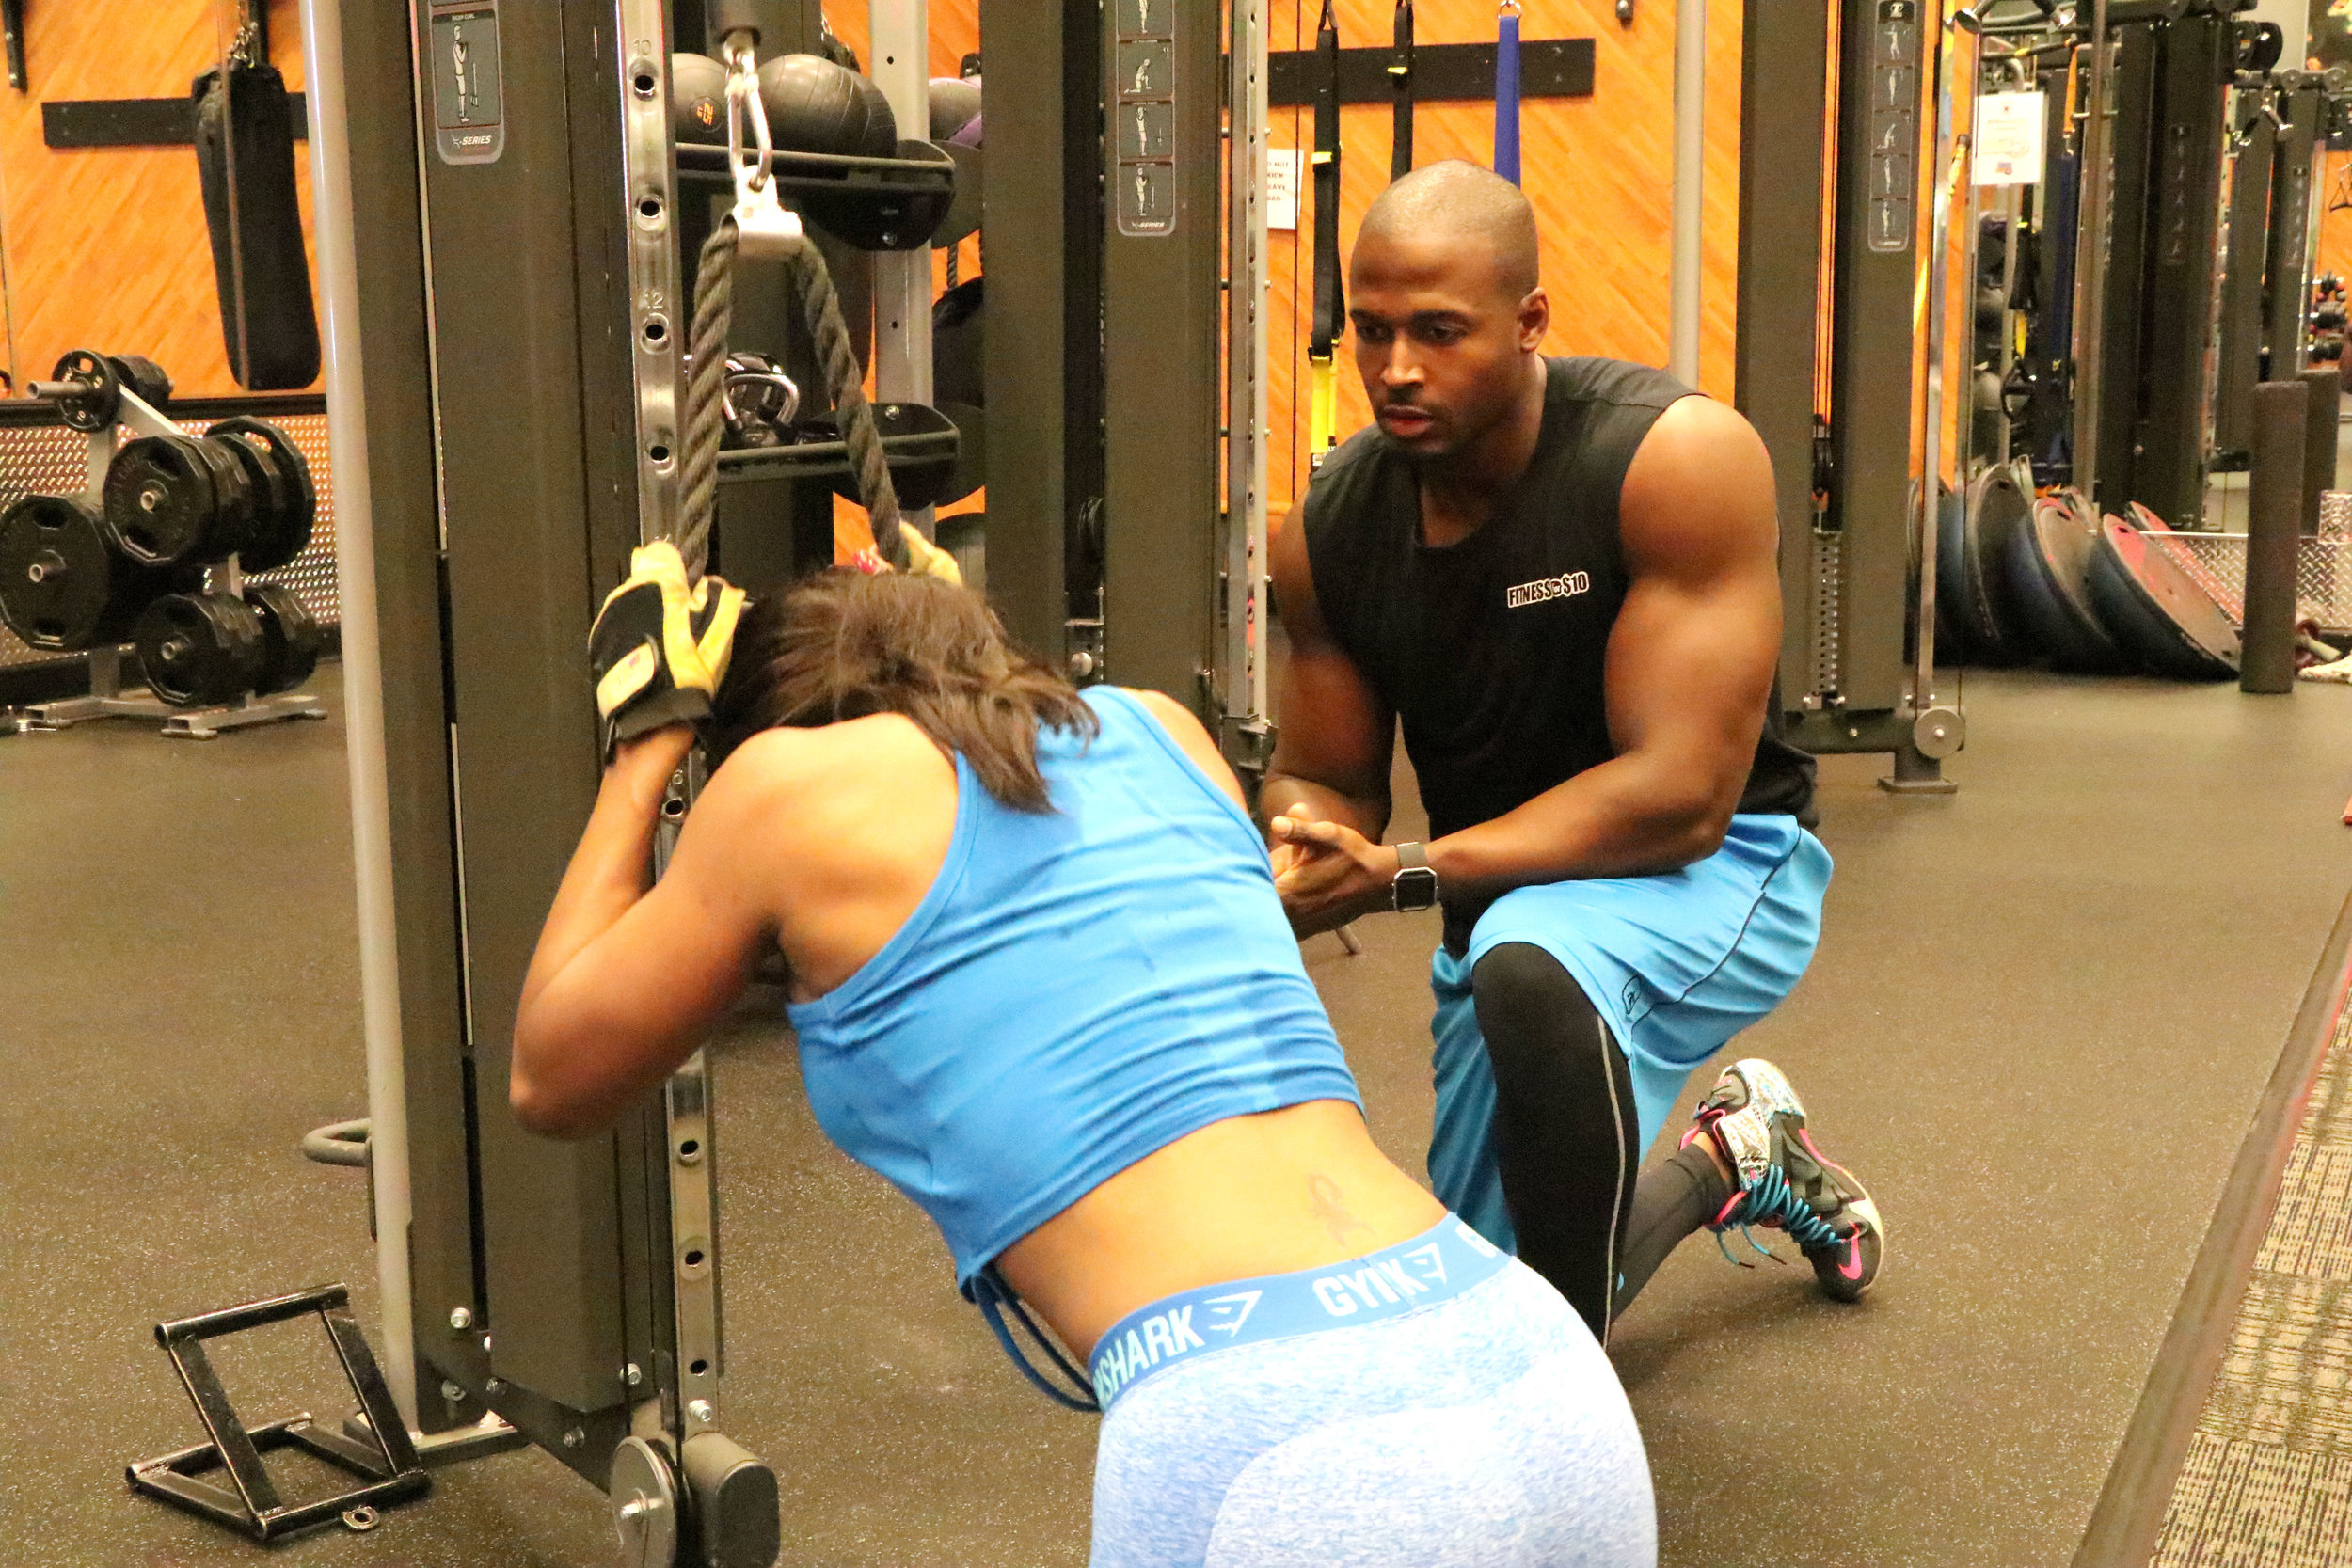 Personal Training - Looking for a personal trainer? Welcome home!